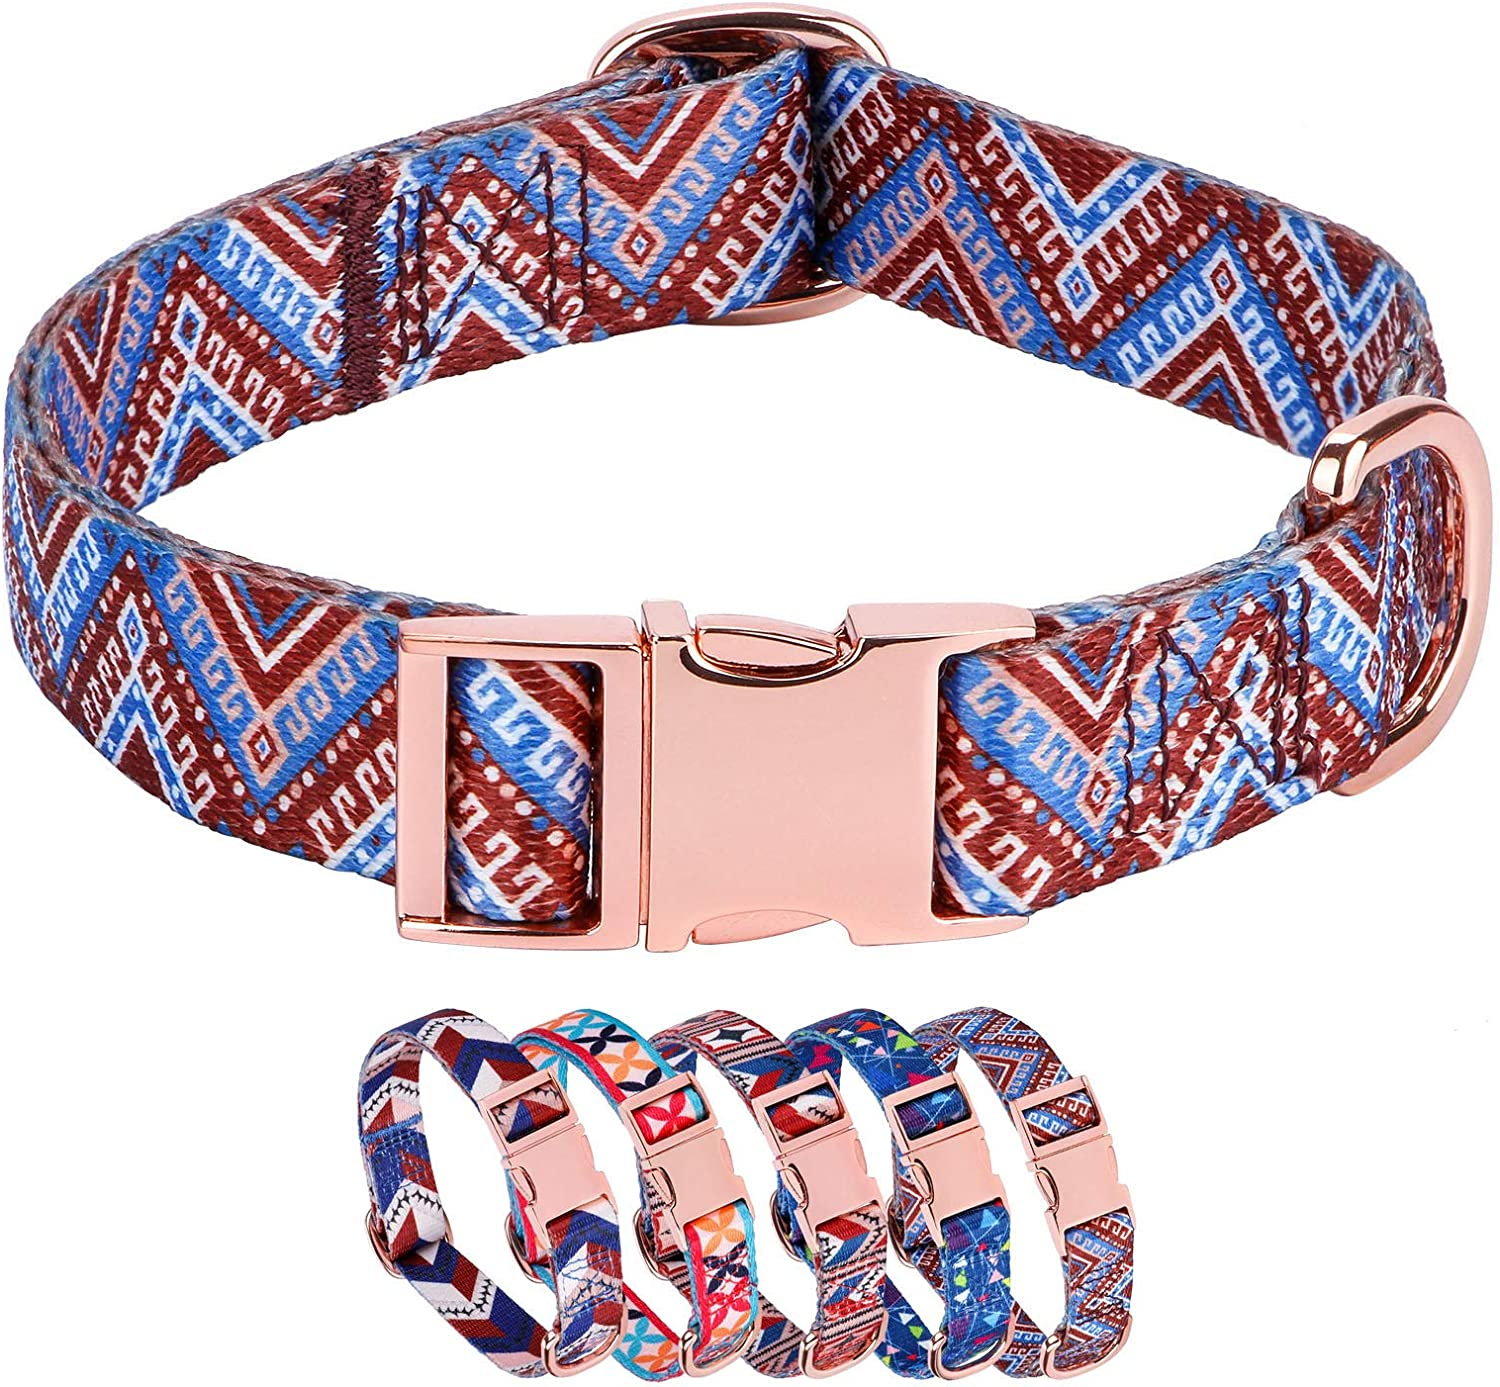 Rhea Special sale item Rose Durable Personalized Dog Max 42% OFF Gold Metal Buckle Collar